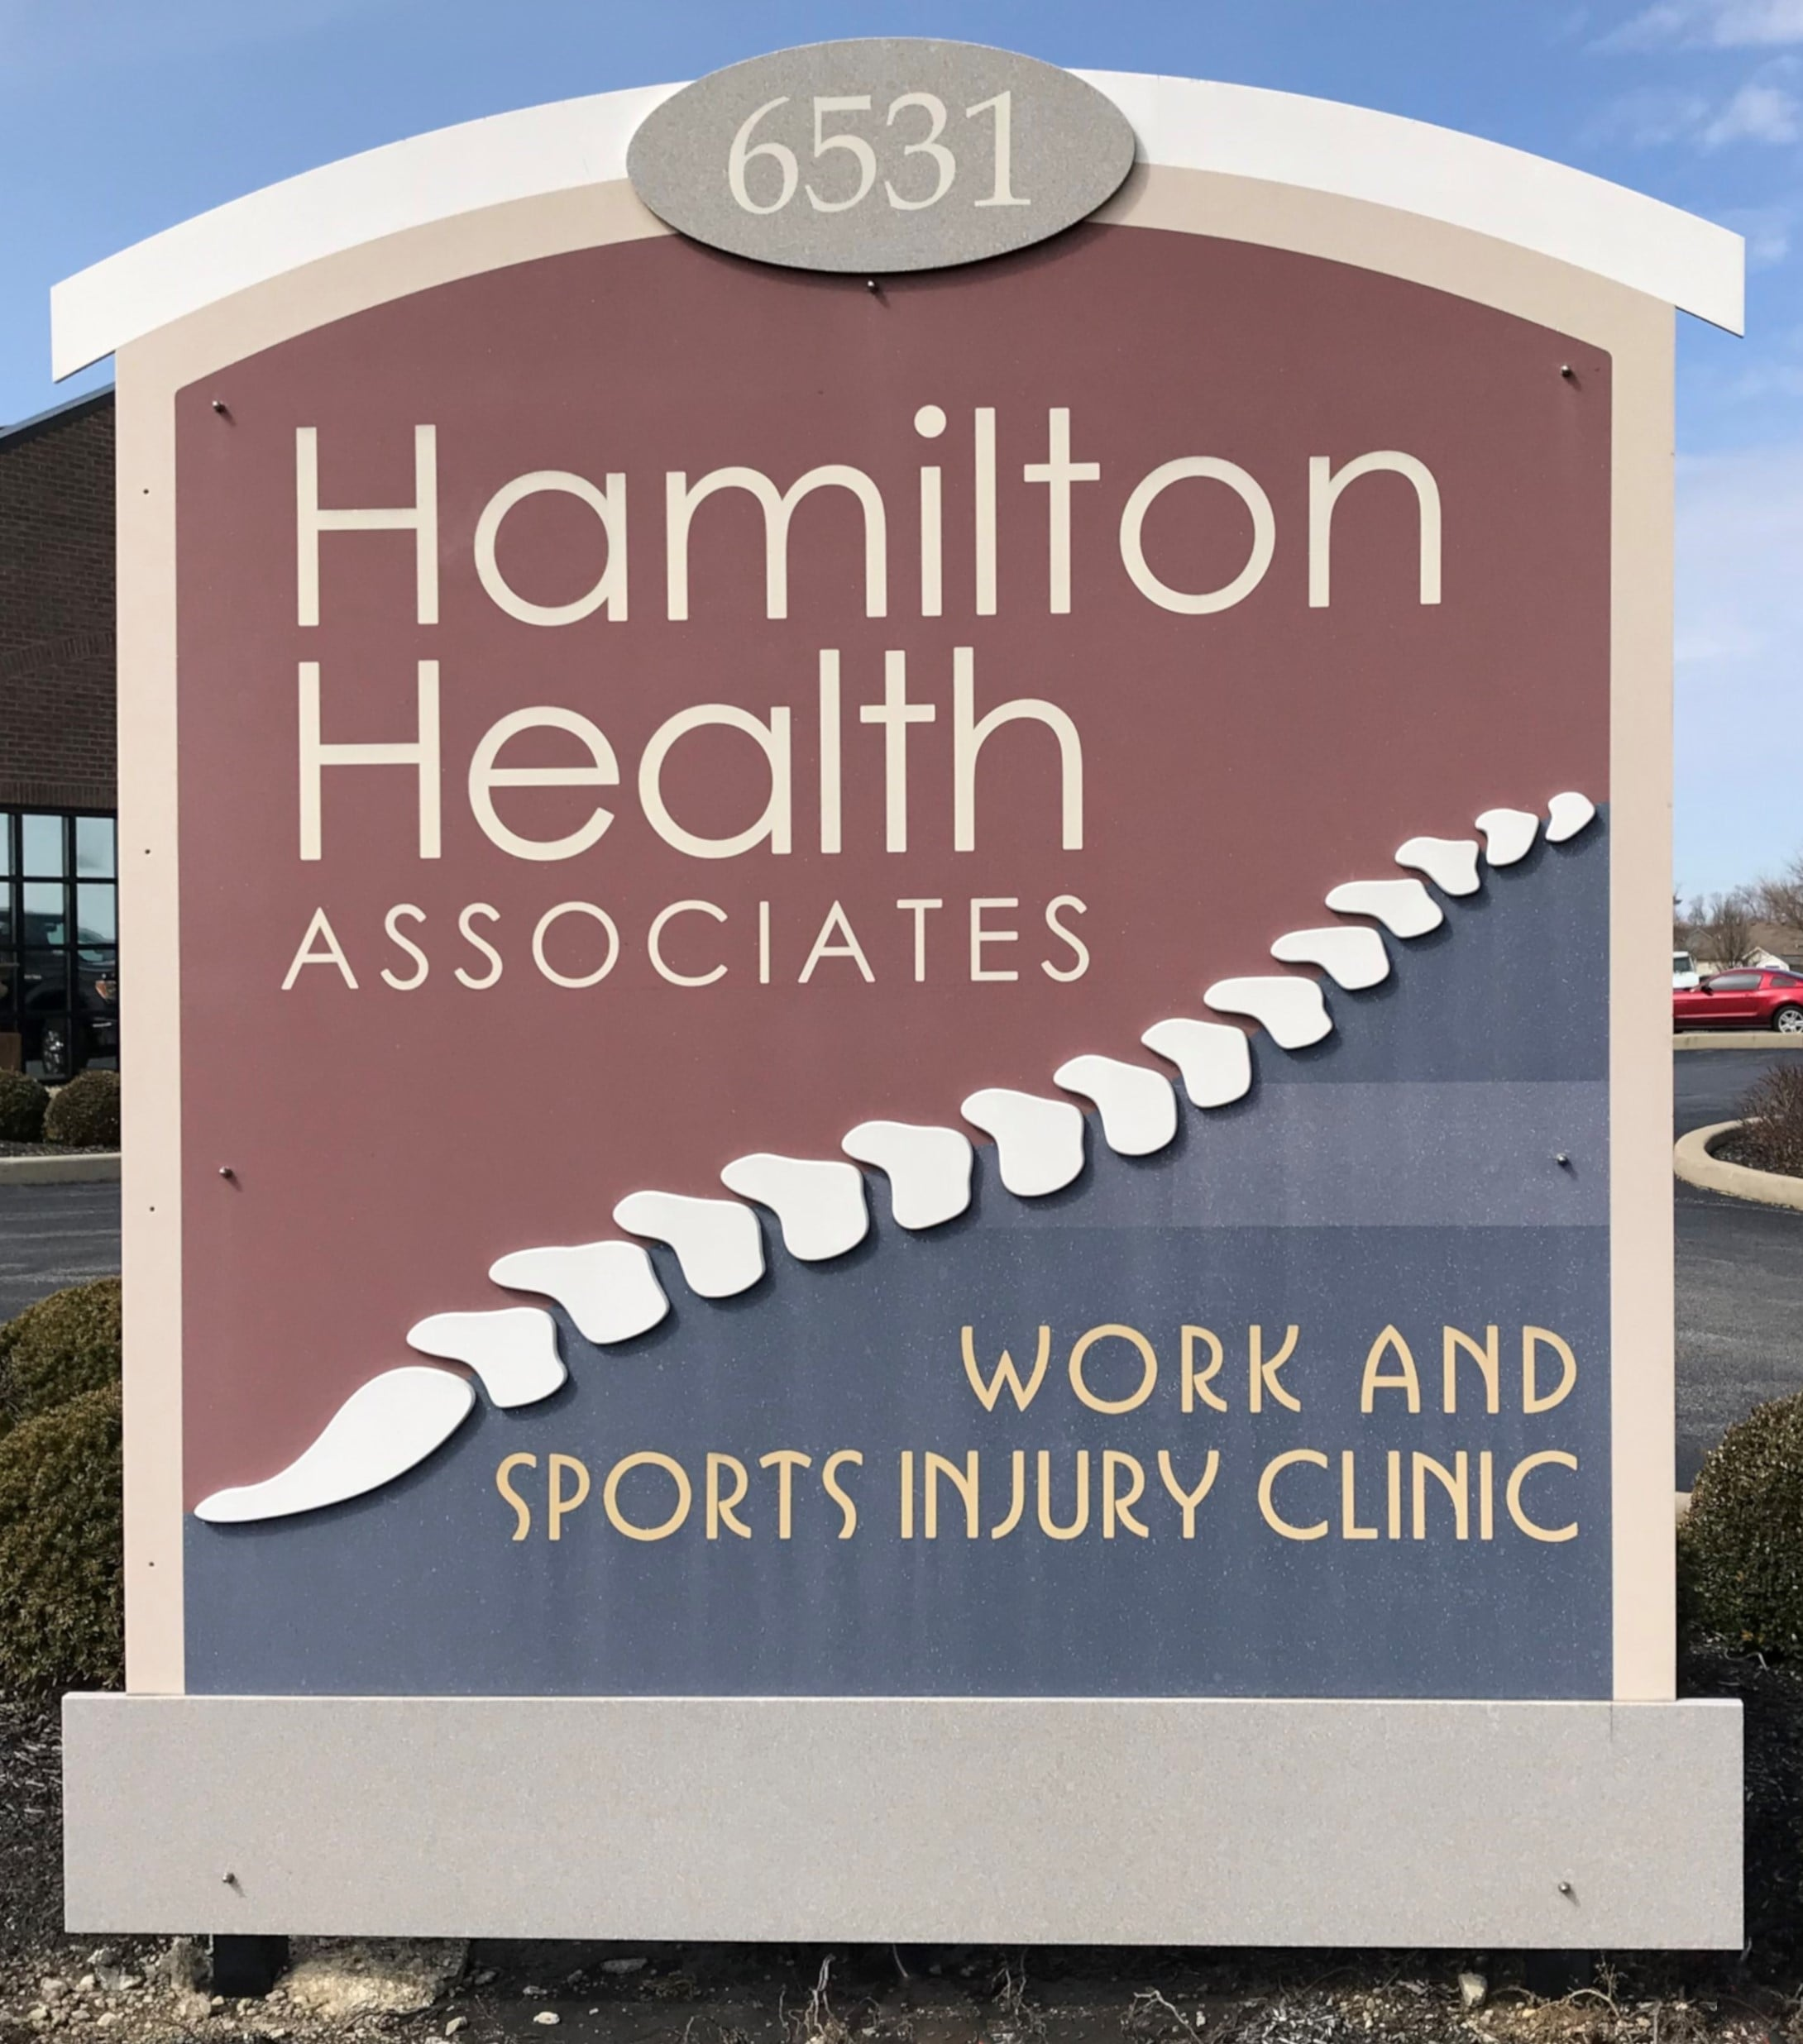 Hamilton Health Associates Work and Sports Injury Clinic